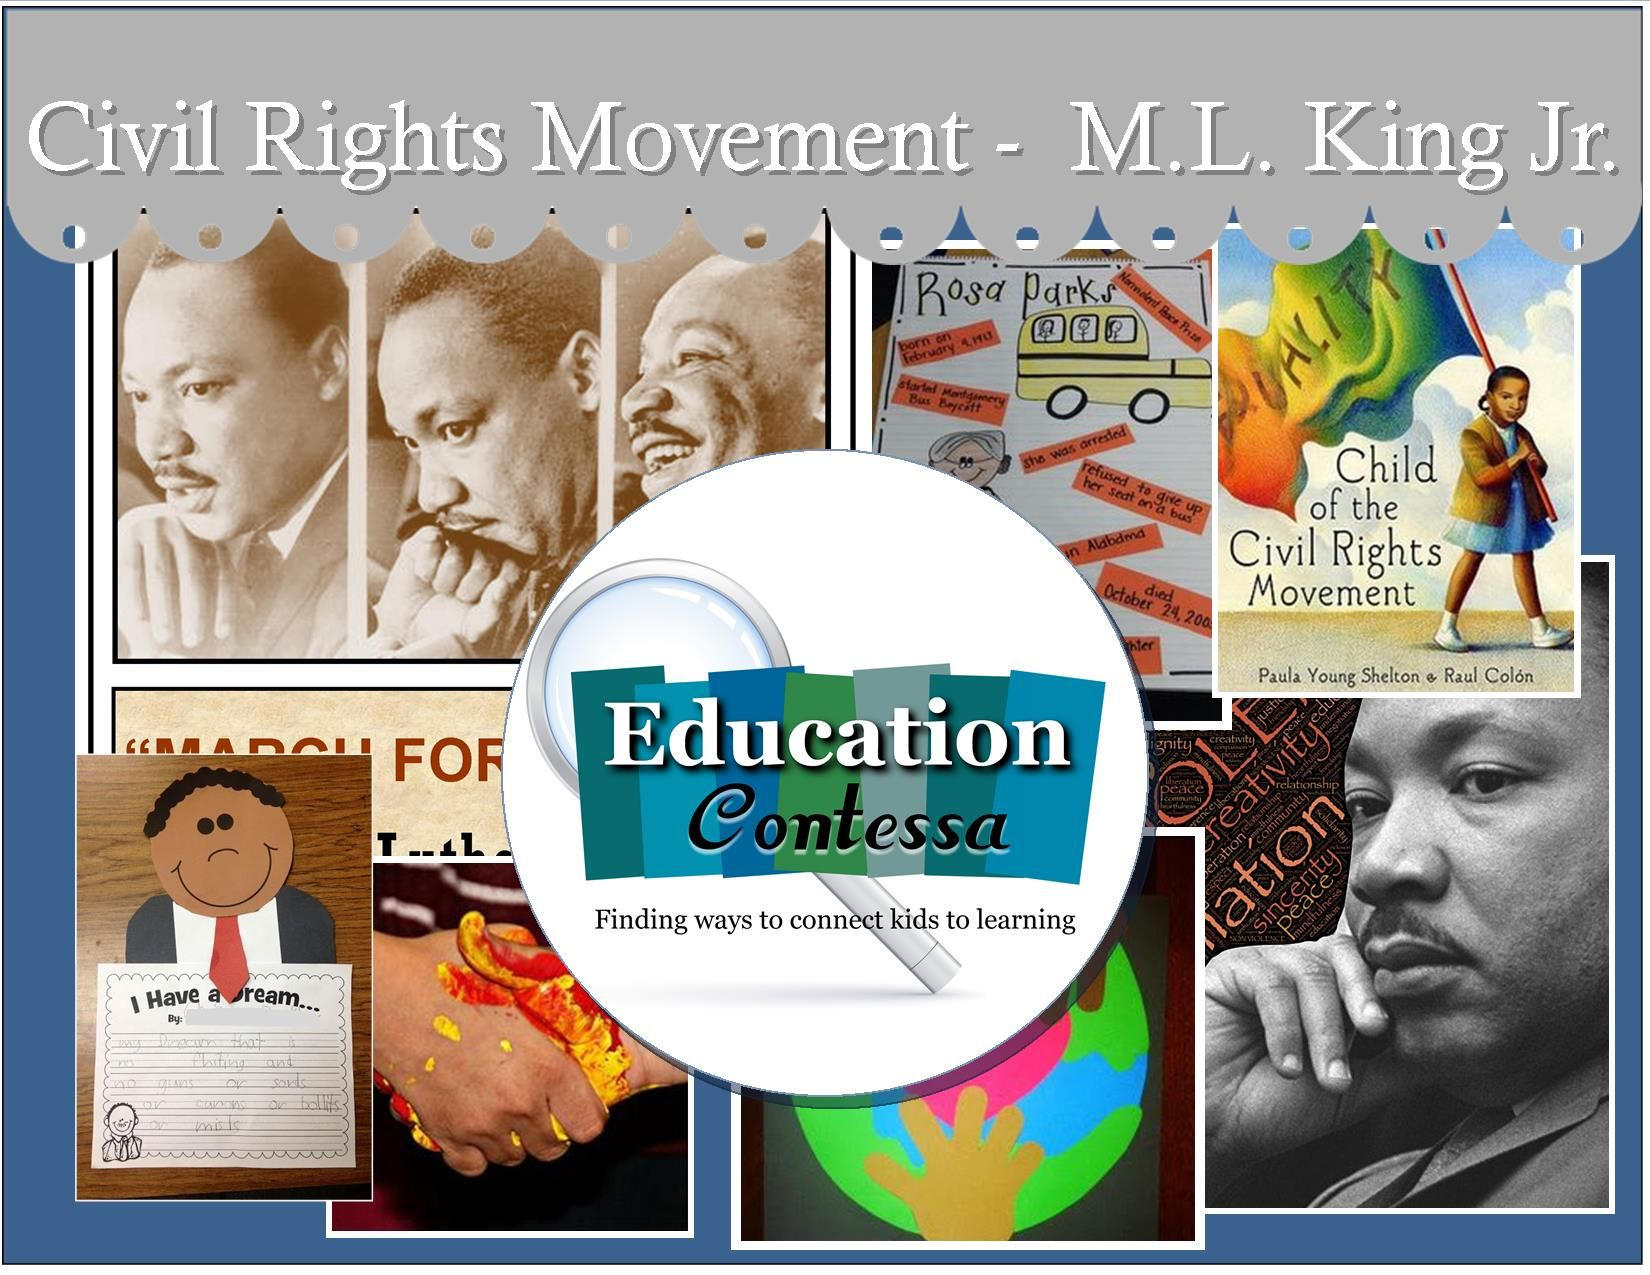 Lessons And Activities To Teach Civil Right Movement And M Lng Jr